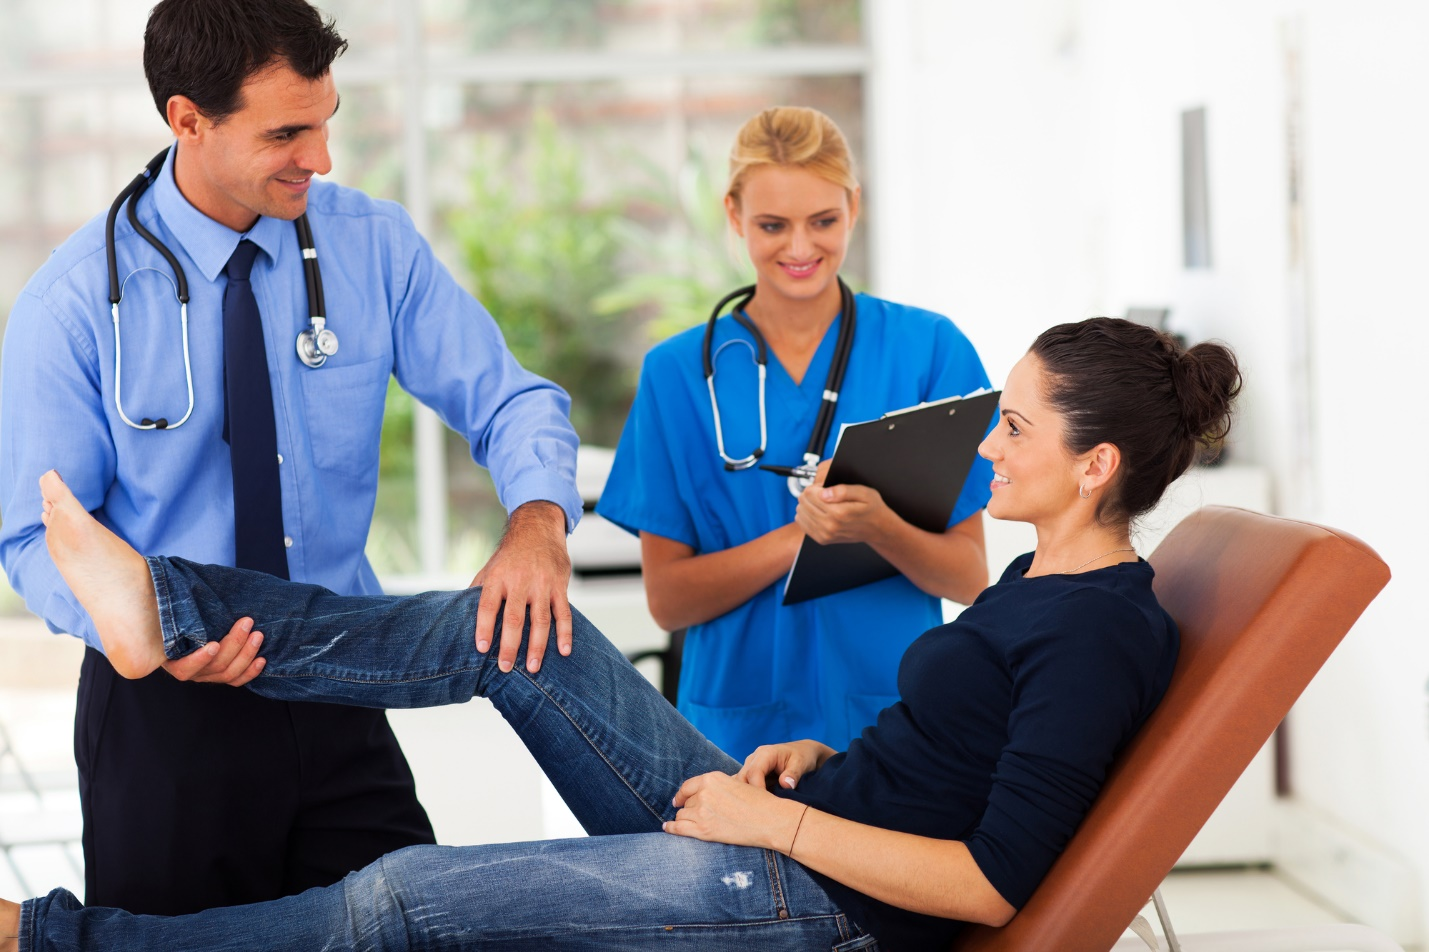 A doctor talking to a patient  Description automatically generated with low confidence